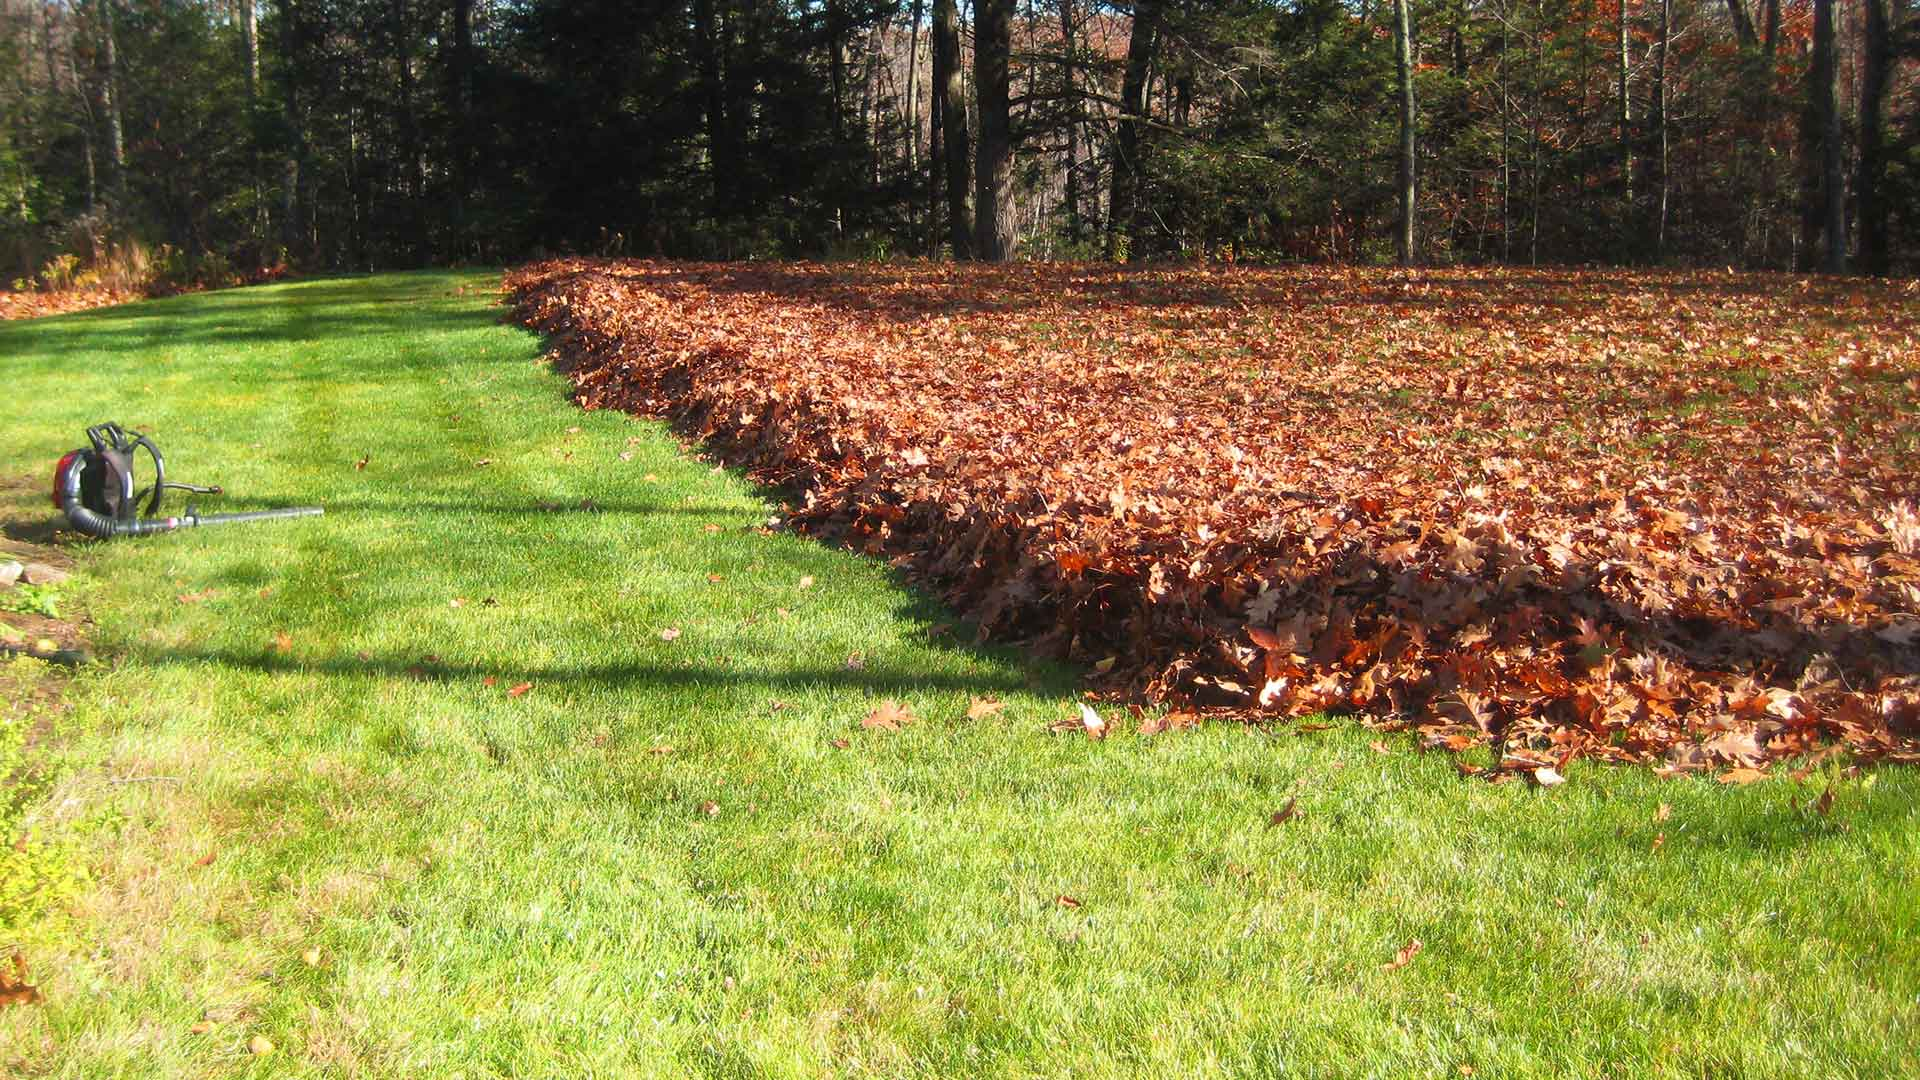 Big leaf removal job that is about halfway completed for the backyard of a homeowner.